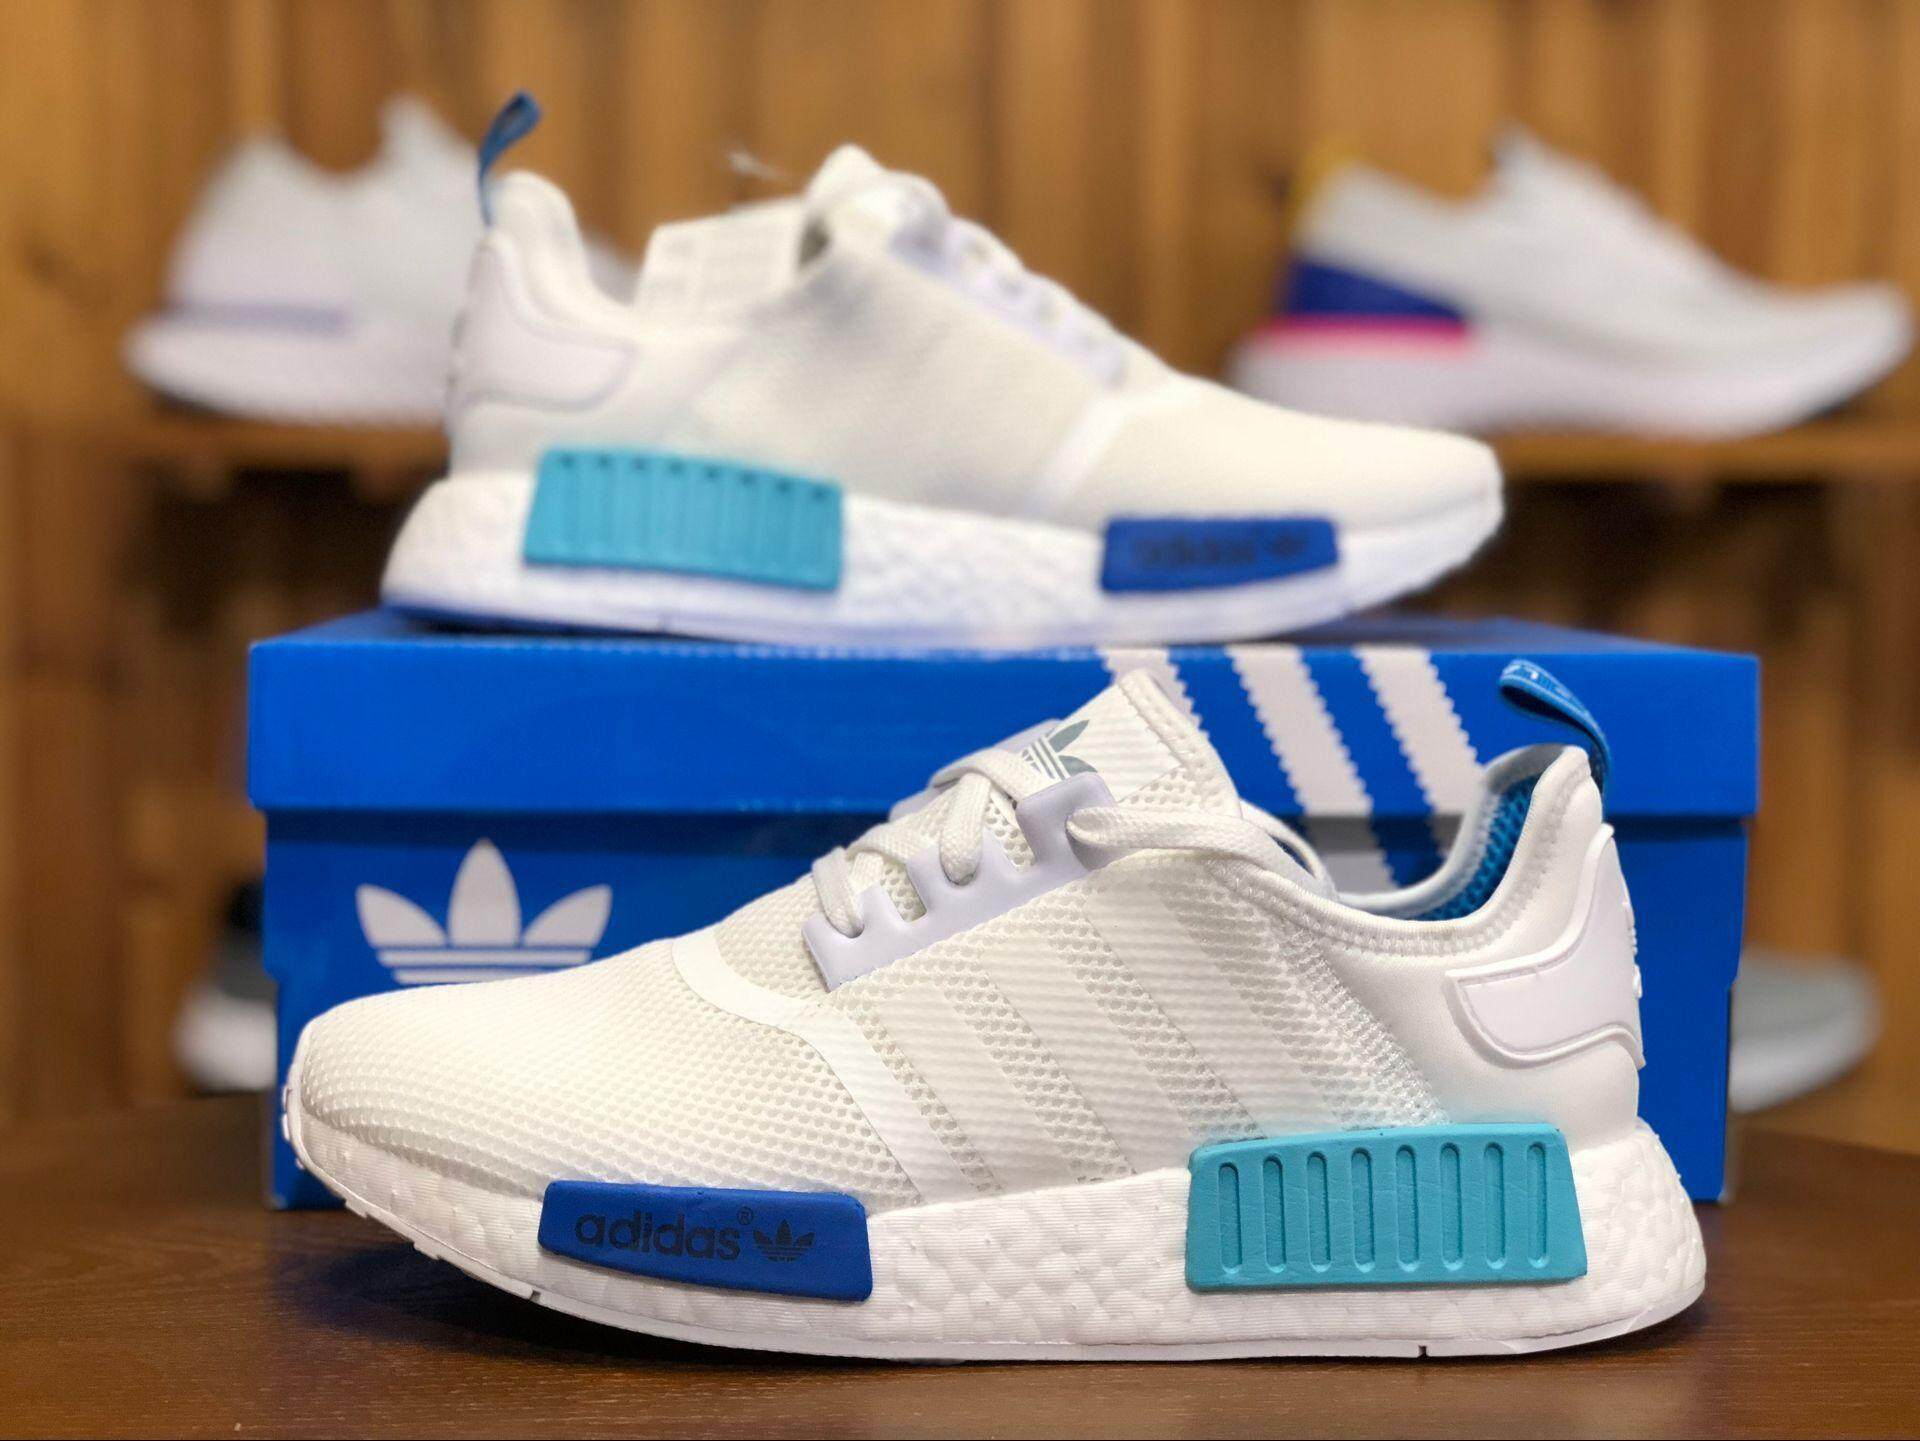 newest 11abe 3ebec Sale ADIDA 2018 NMD  R1 Runner Boost White Bright Cyan Blue S75235 Women  and Men Sneaker